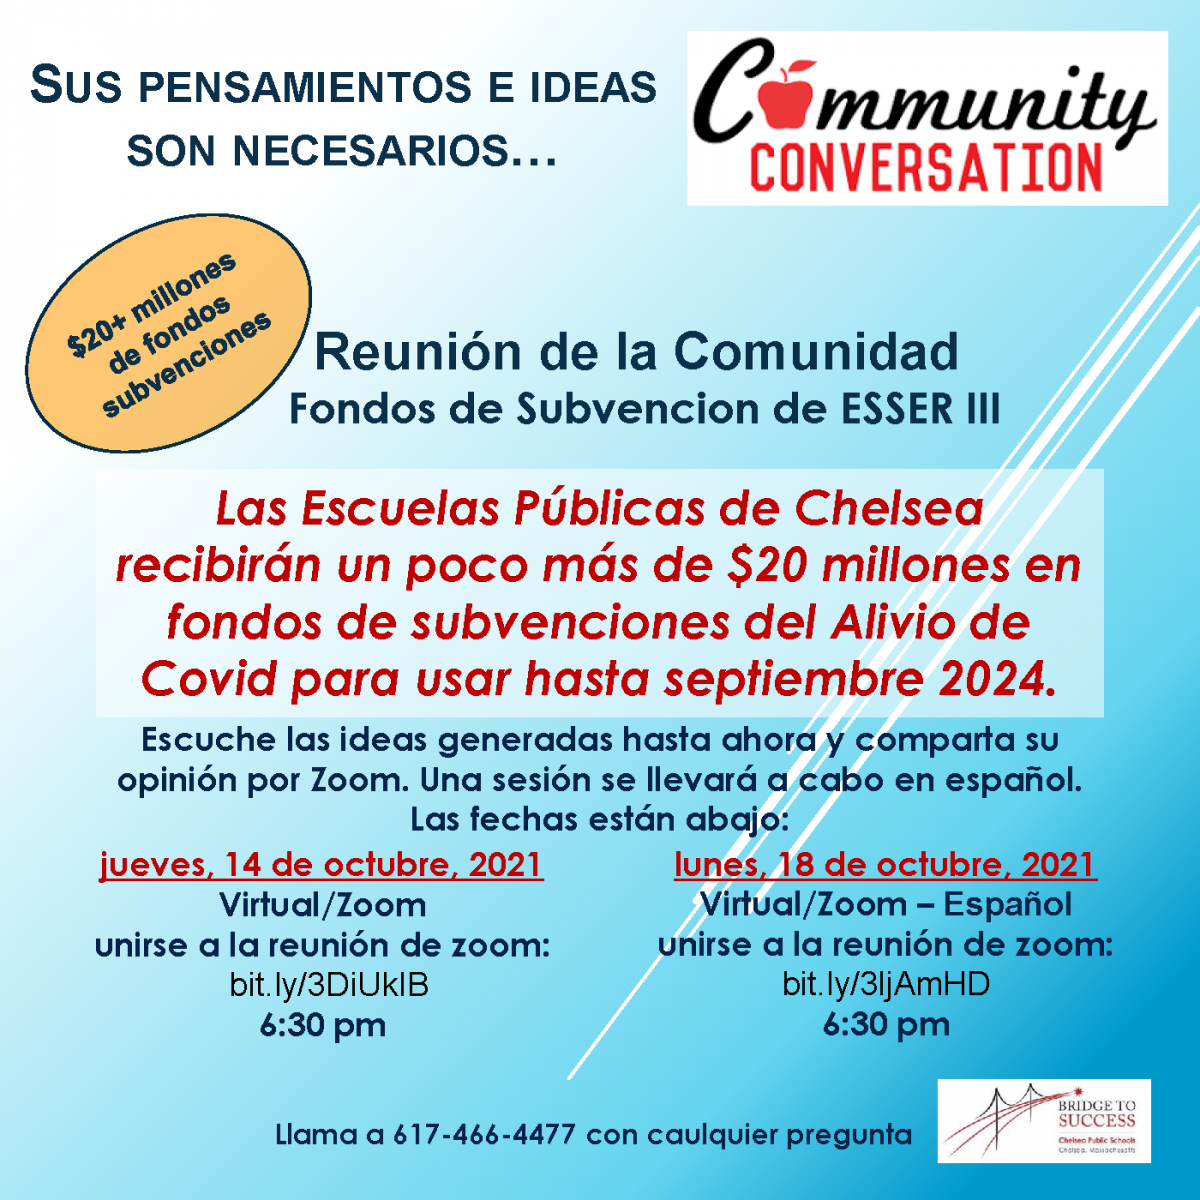 A flyer in Spanish describing the ESSER III Grant that Chelsea Public Schools received. The meeting will provide residents the opportunity to provide input on the use of the funds.